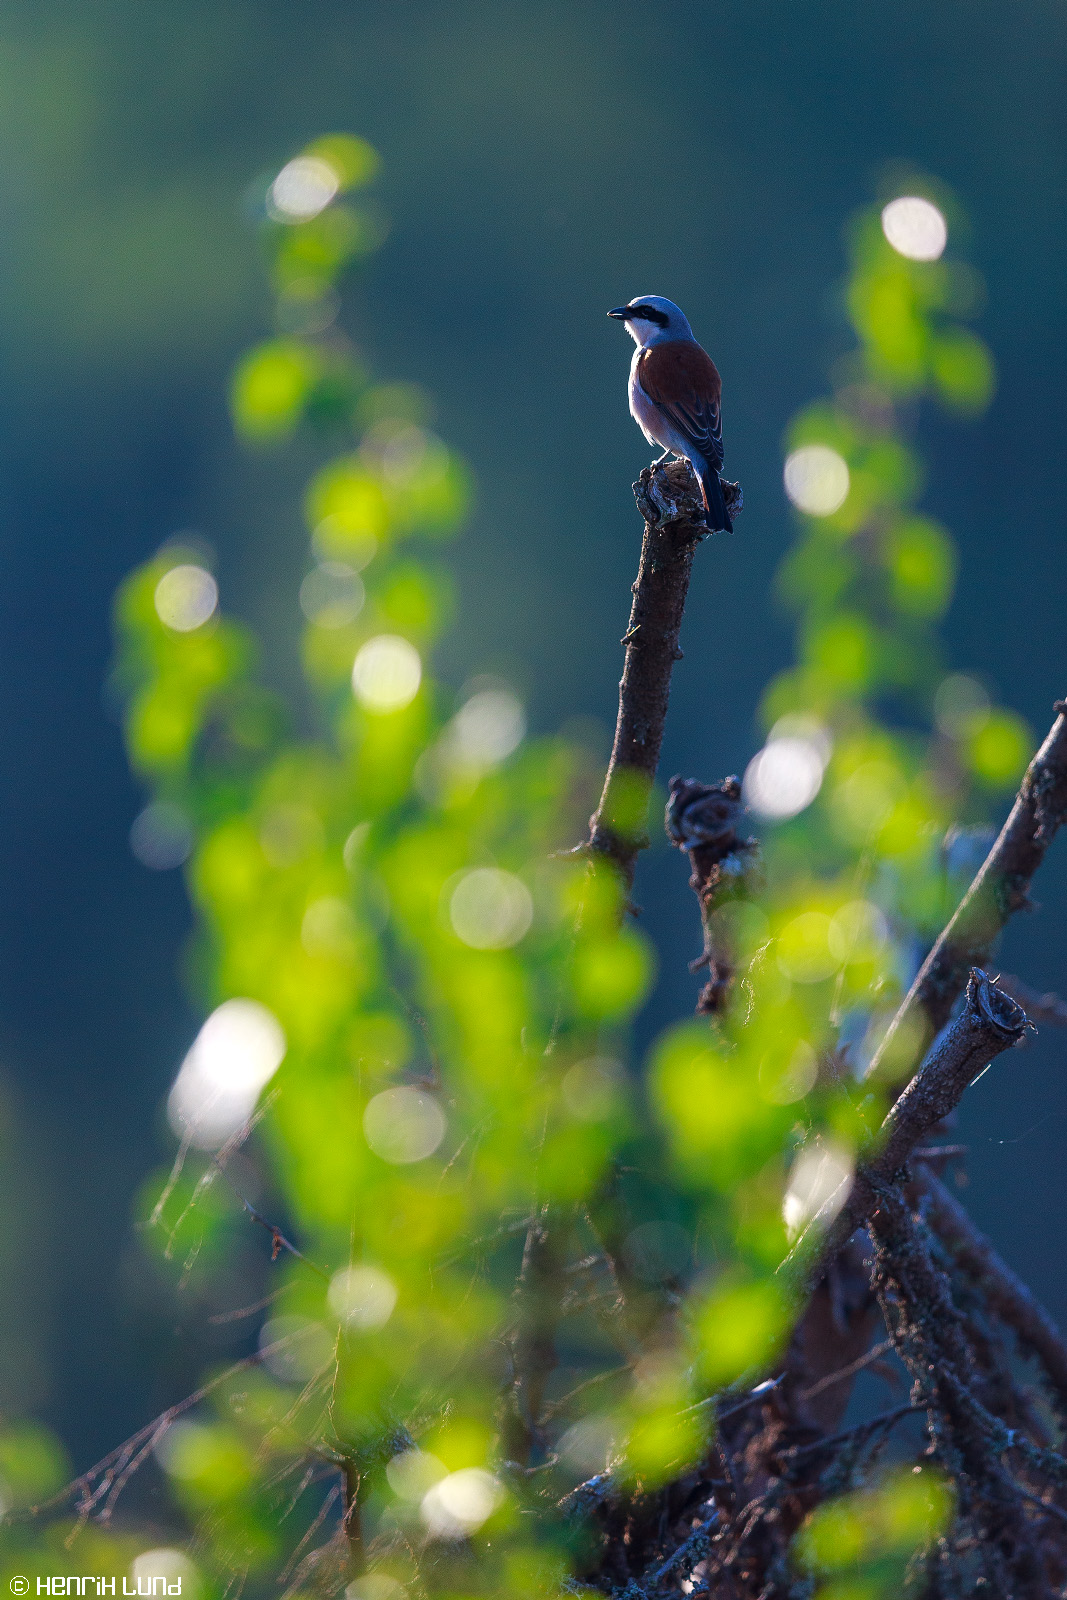 A red-backed shrike backlit in the morning light. Lappträsk, Finland, May 2014.